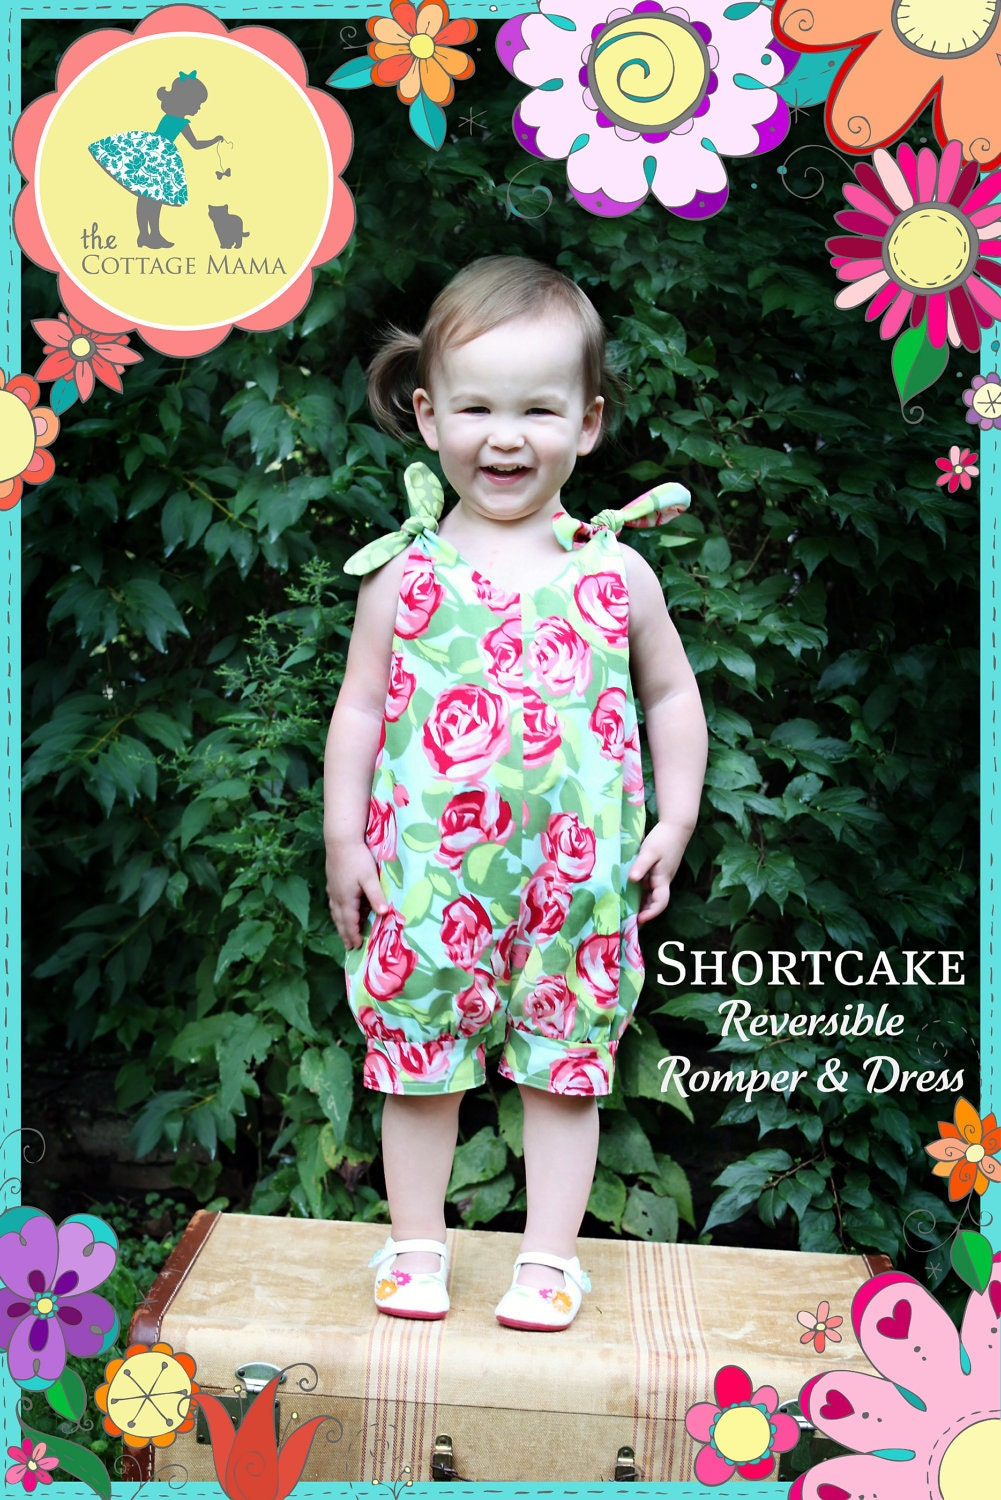 PRINTED Sewing Pattern: Shortcake Reversible Romper and Dress - Size 6 Month through 6 Years